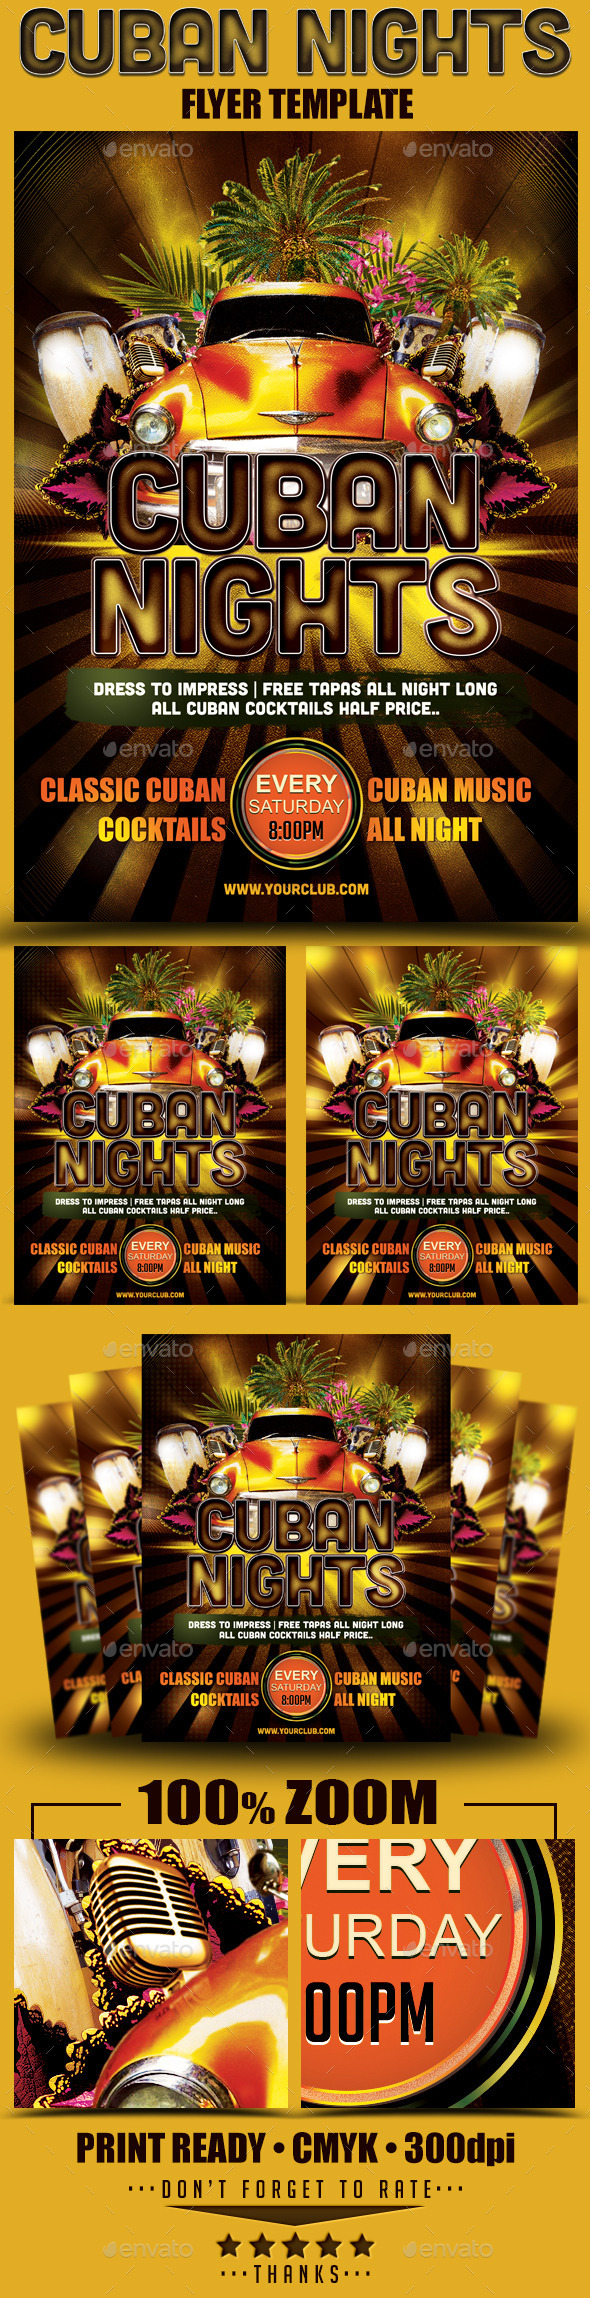 Cuban Nights Flyer Template - Clubs & Parties Events